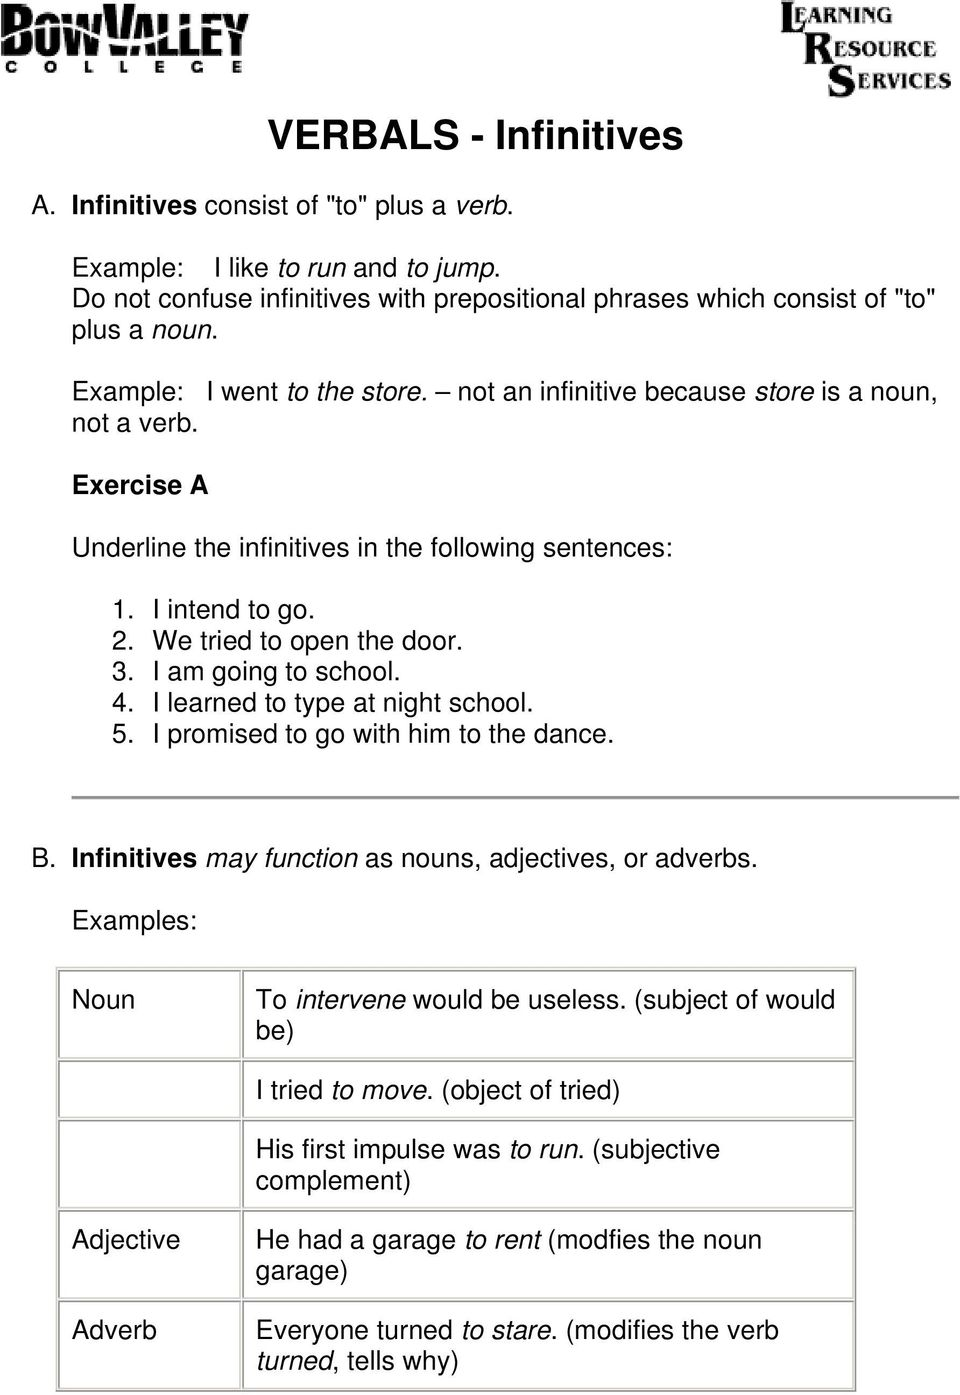 Adjective And Adverb Clauses Worksheet Heygotomaps – Adverb Clause Worksheet